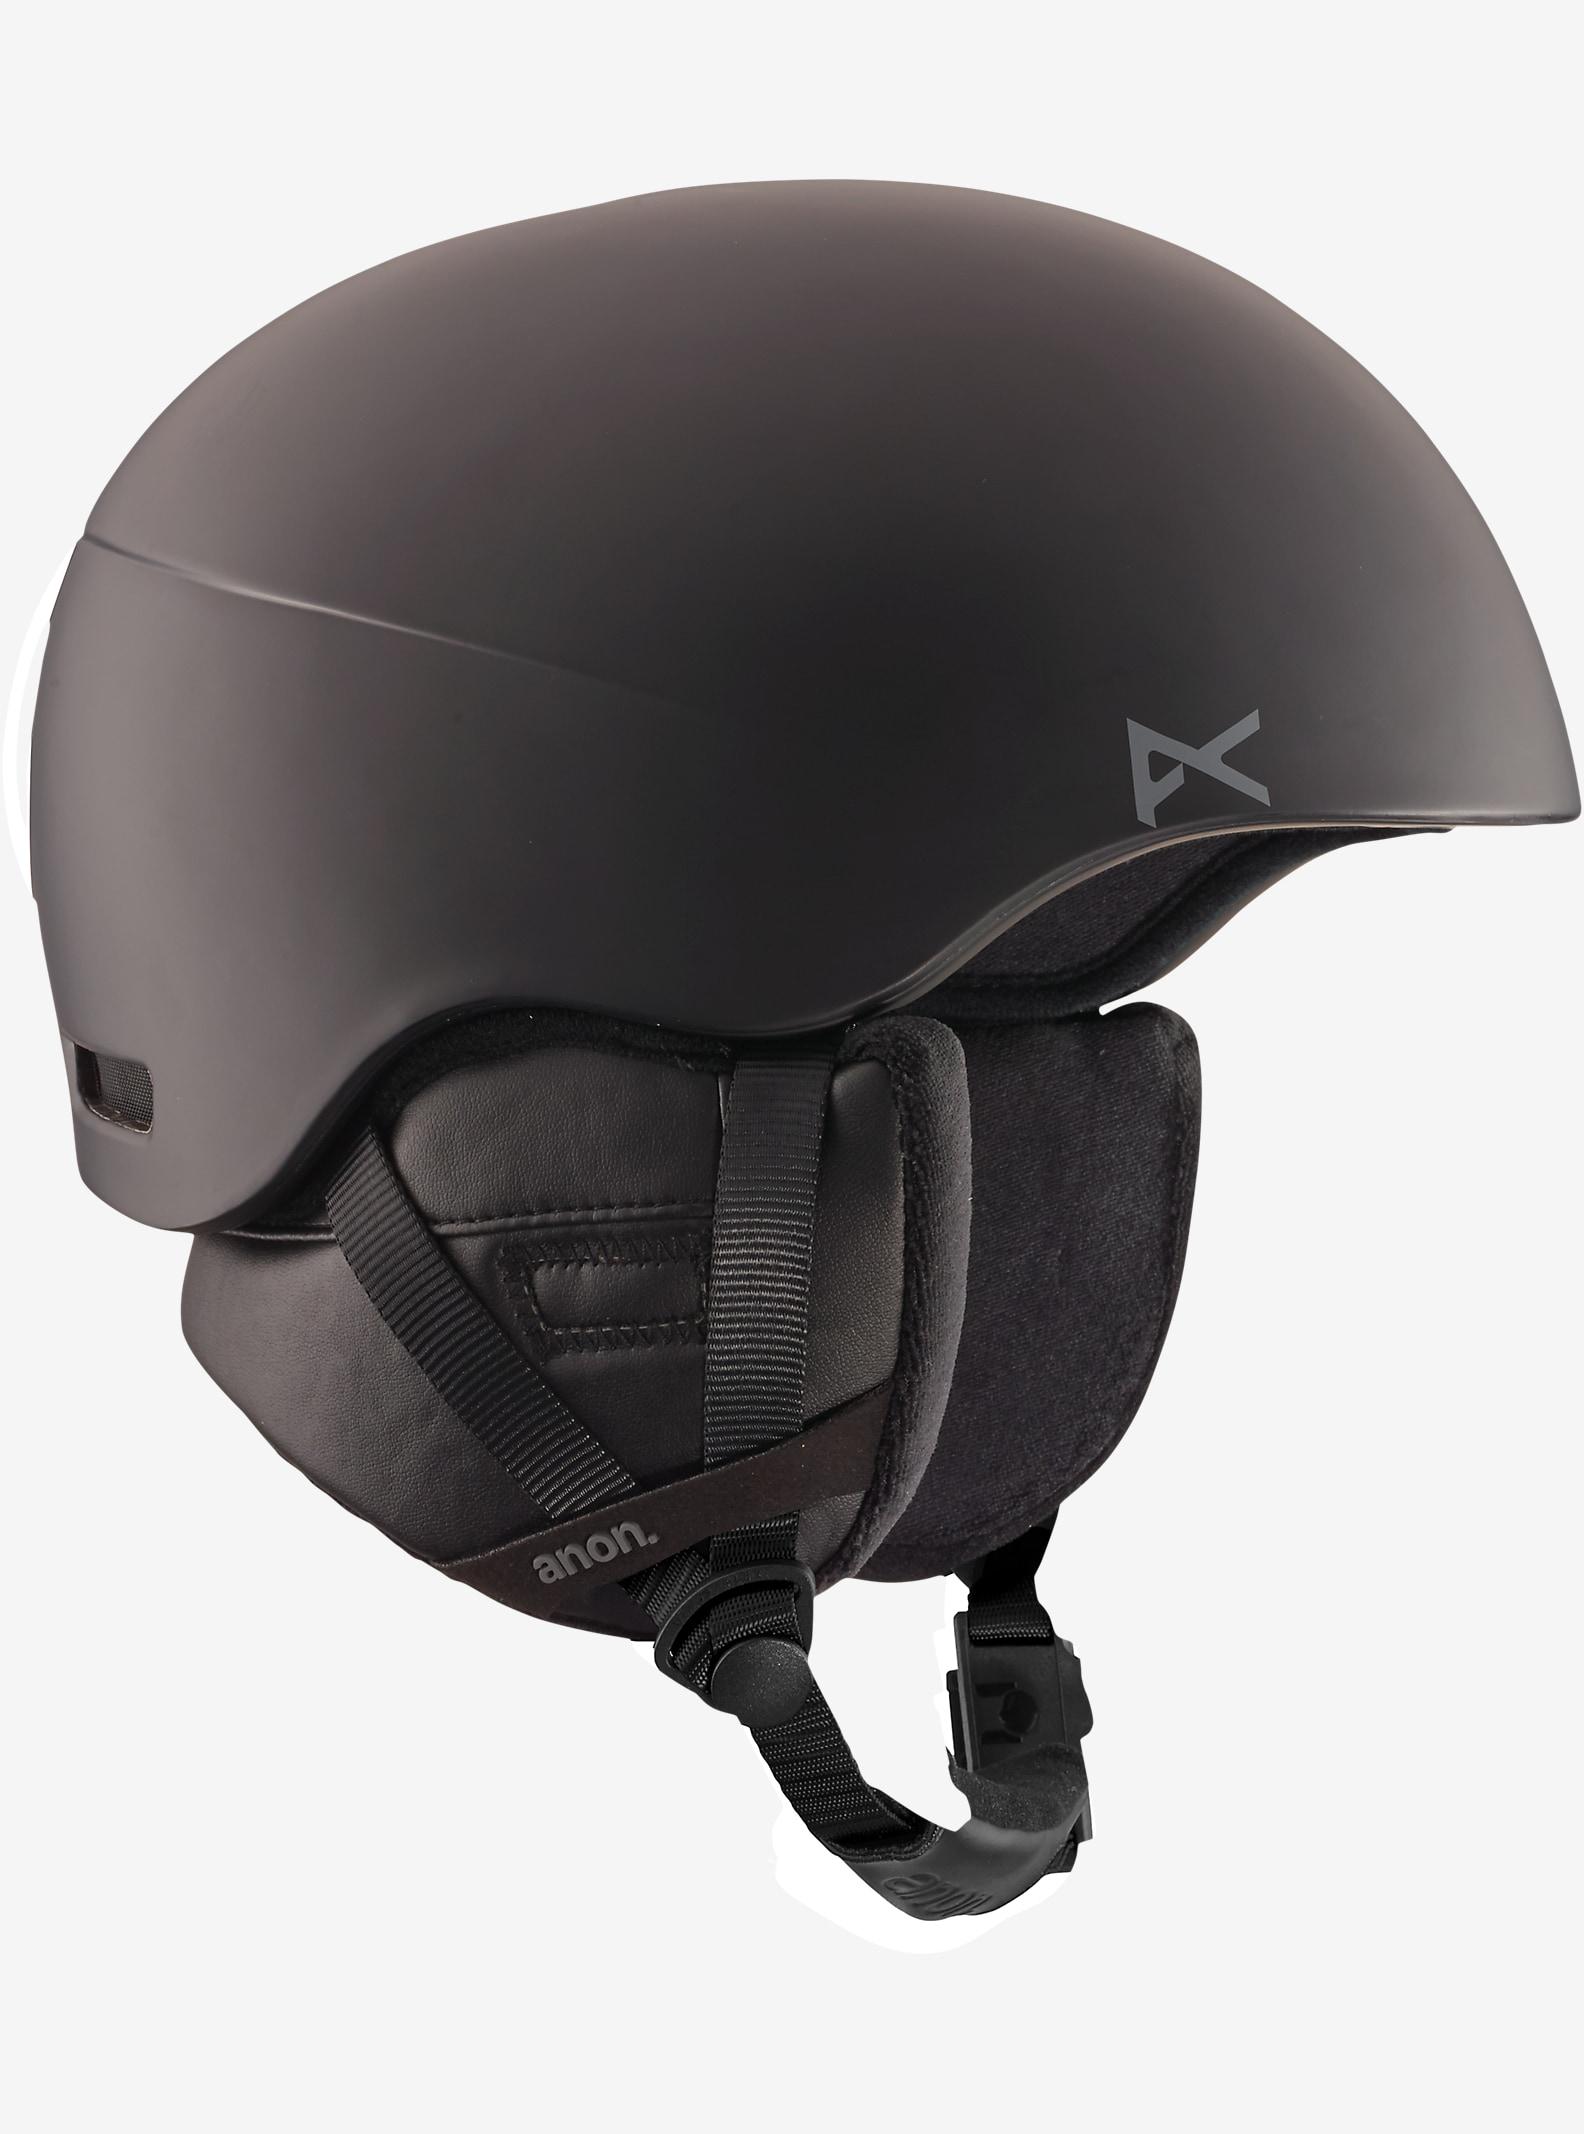 Men's Anon Helo 2.0 Helmet shown in Black